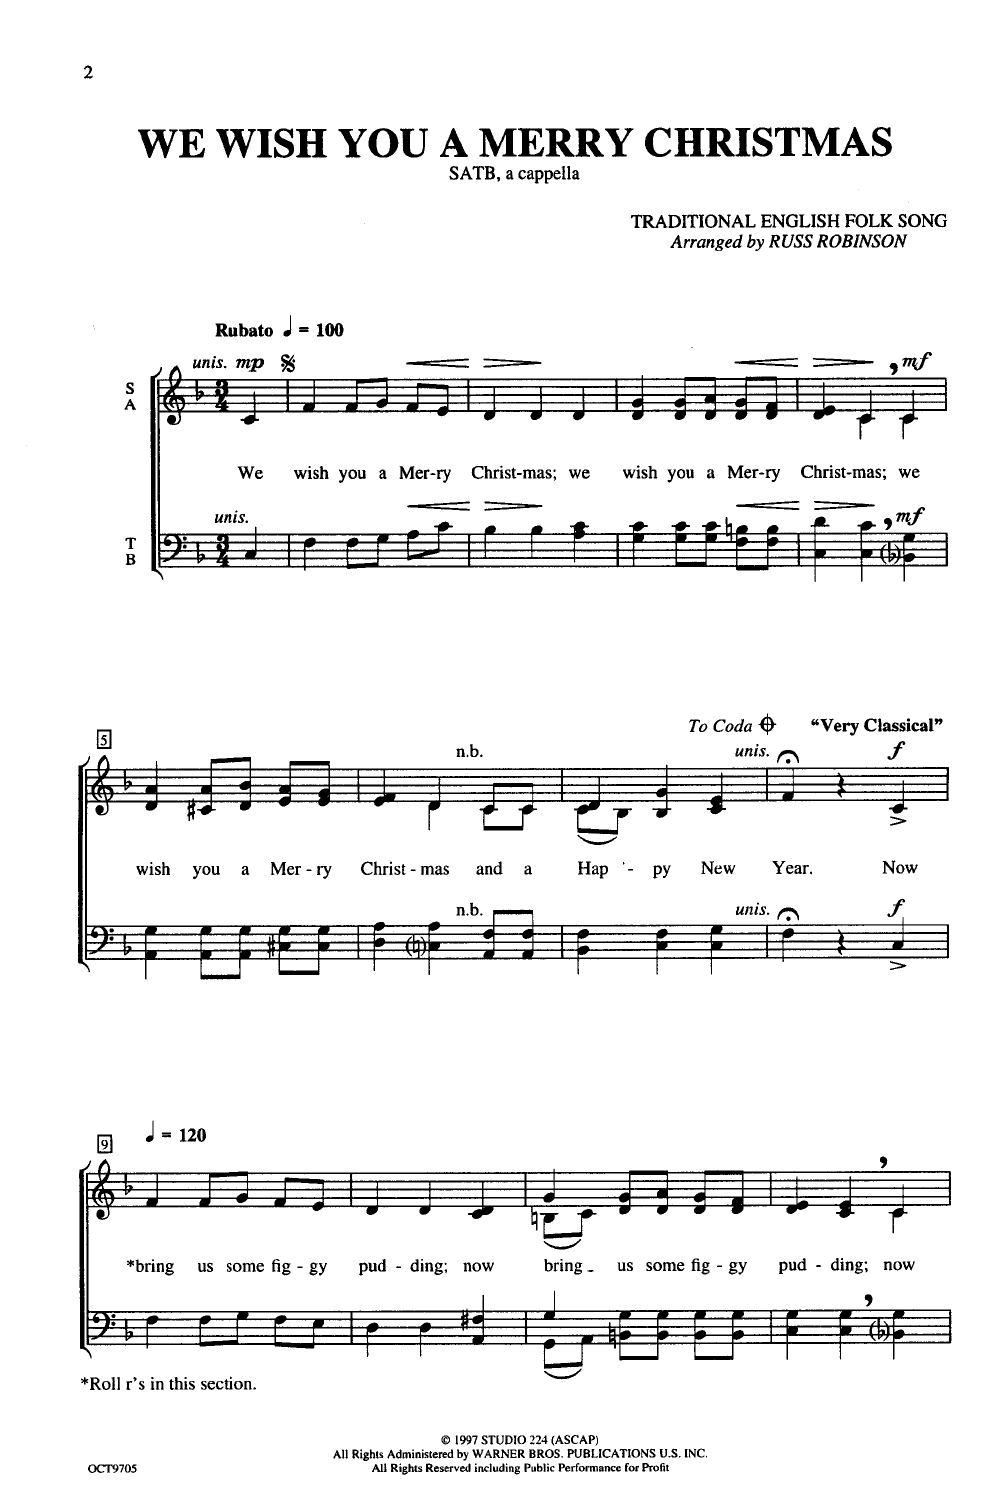 We Wish You a Merry Christmas (SATB ) by ROB | J.W. Pepper Sheet Music